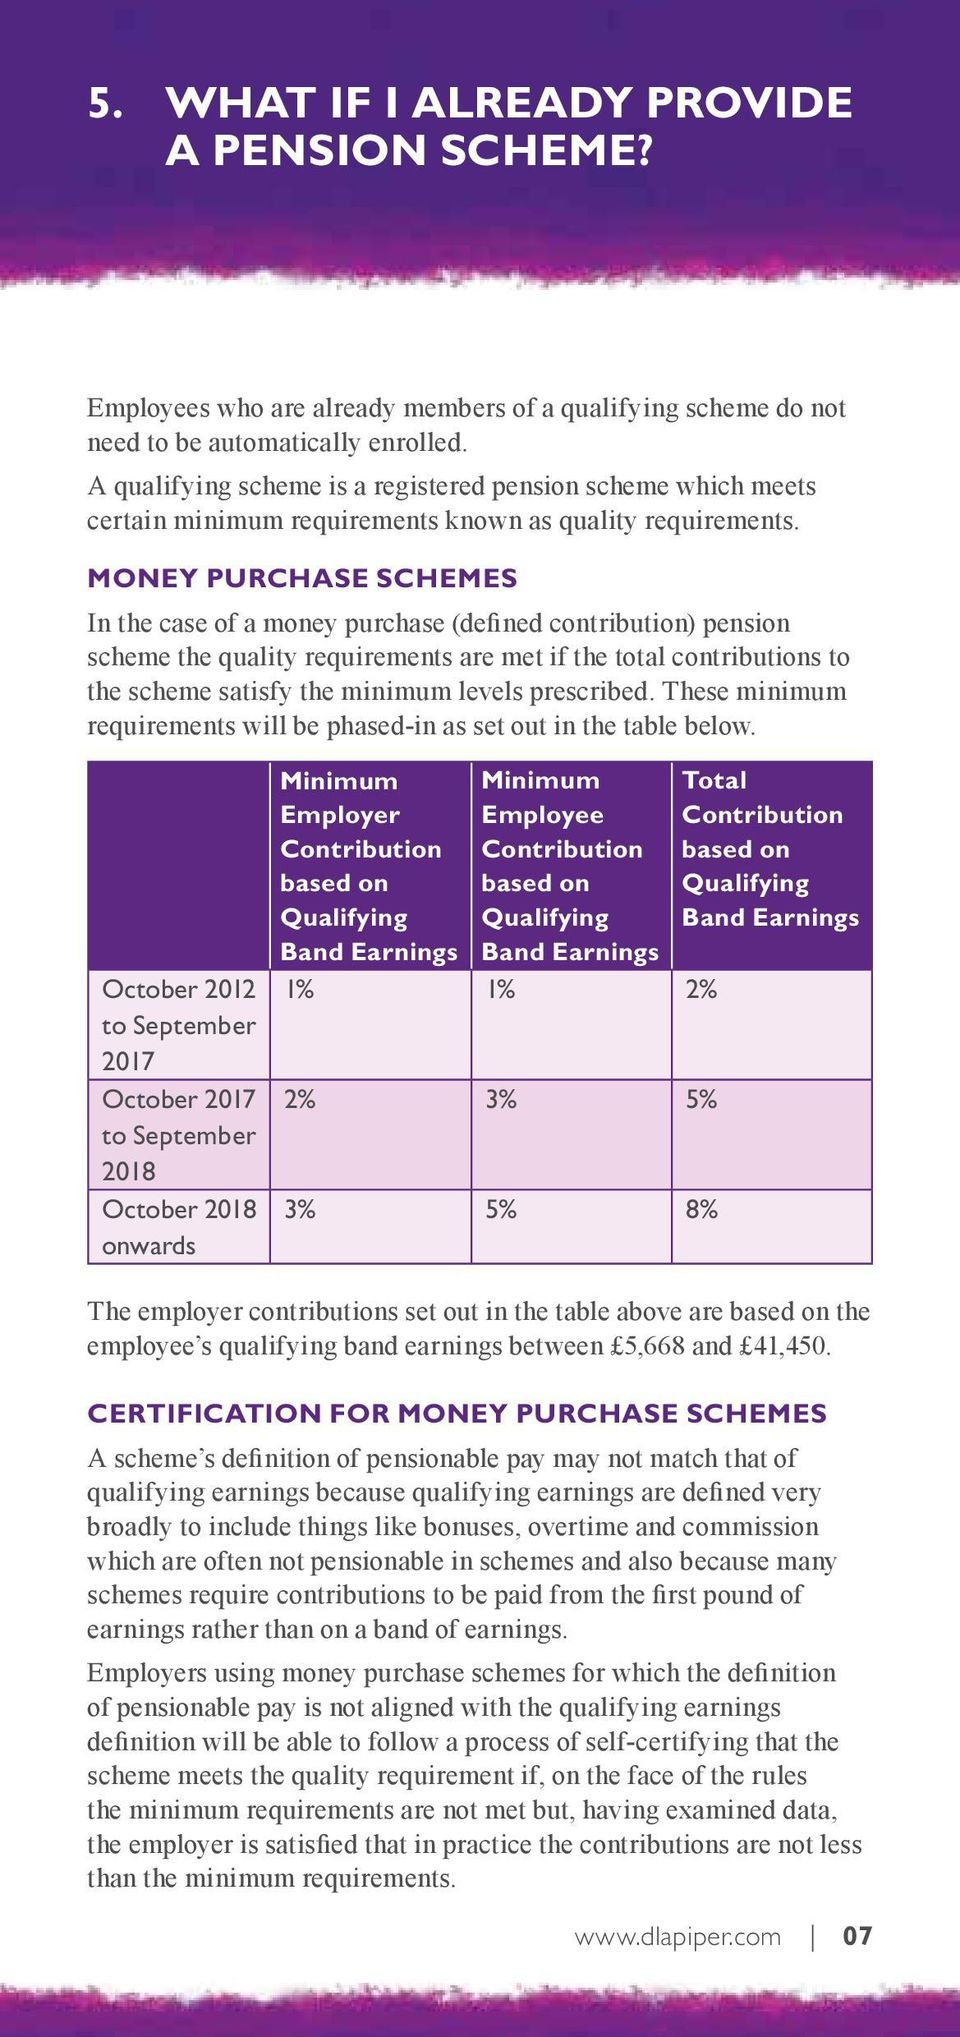 Money Purchase Schemes In the case of a money purchase (defined contribution) pension scheme the quality requirements are met if the total contributions to the scheme satisfy the minimum levels